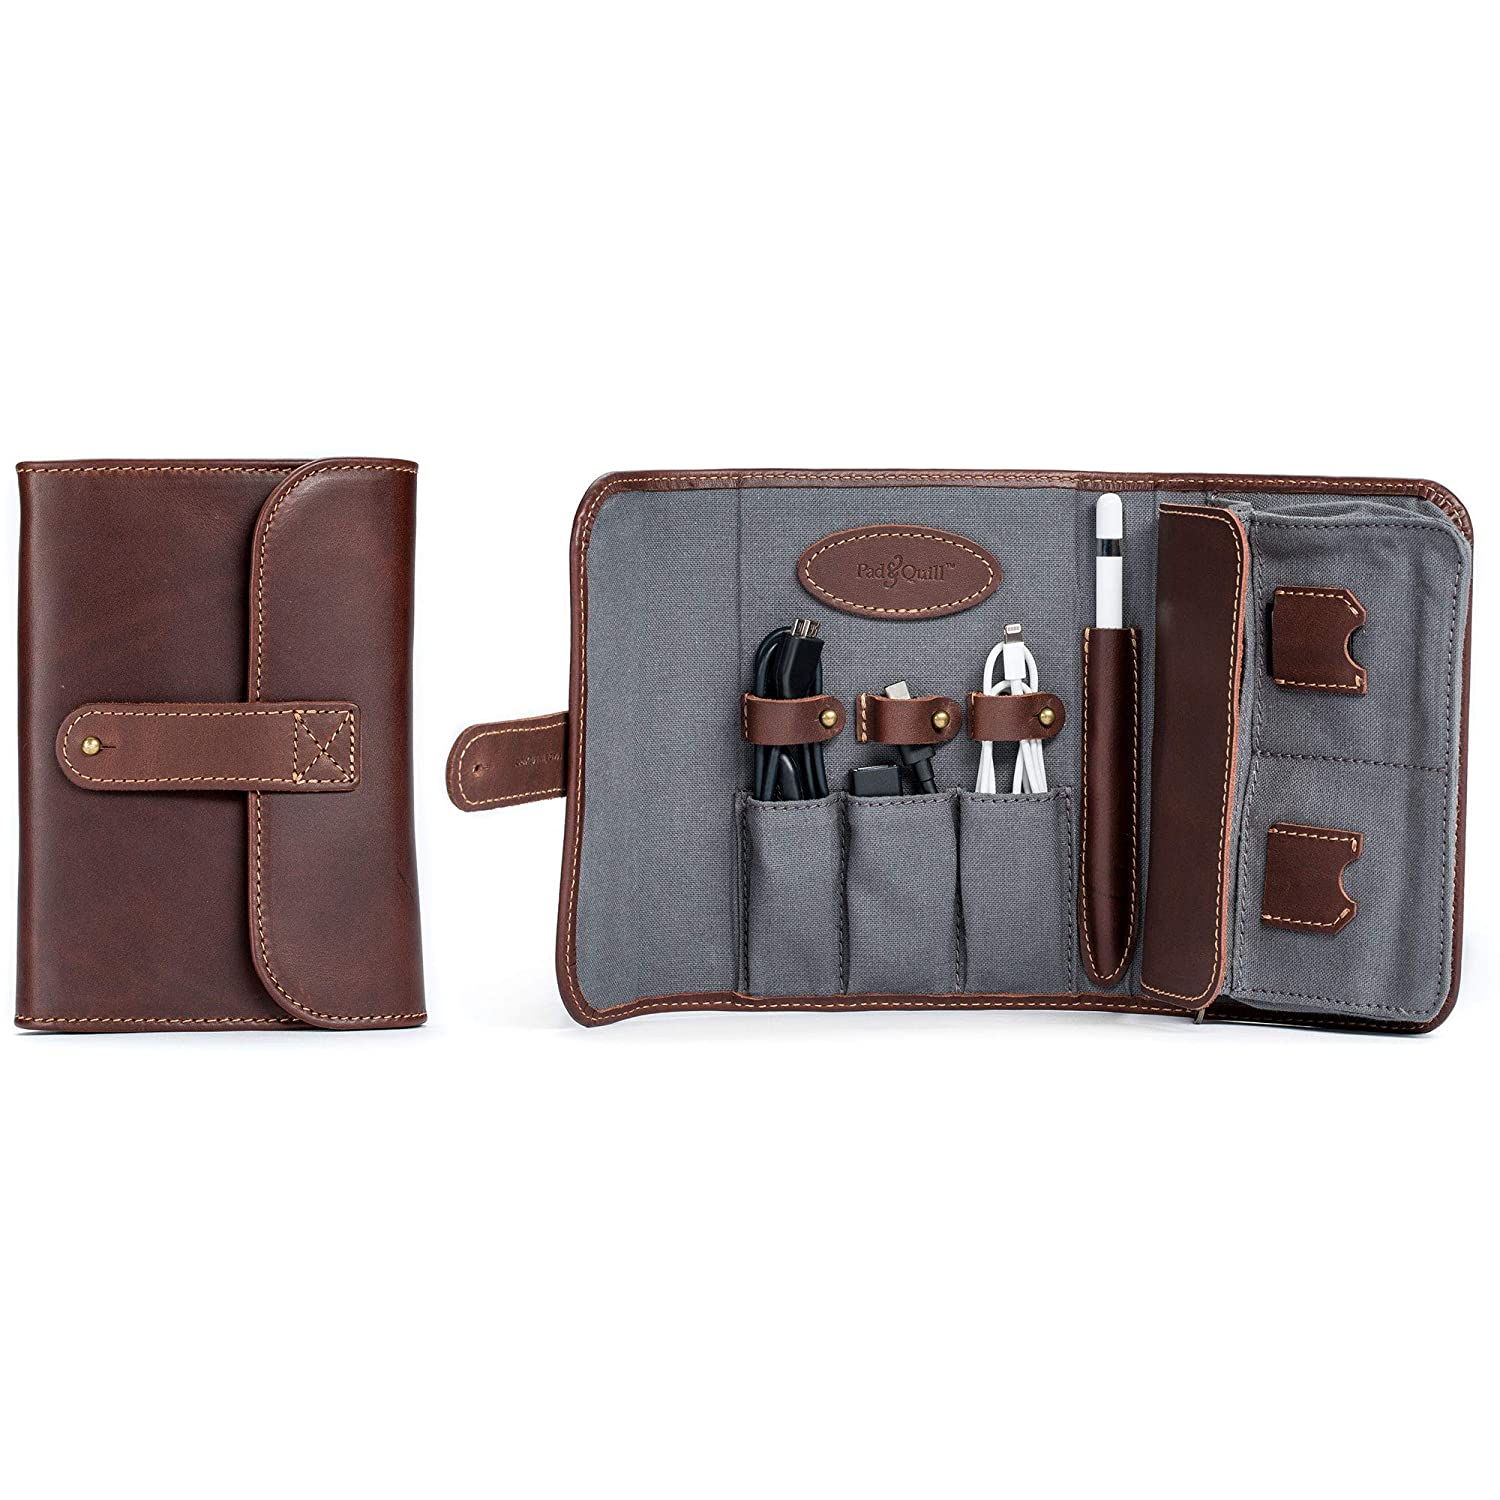 The Techfolio Cord Organizer travel product recommended by Brian Holmes on Lifney.